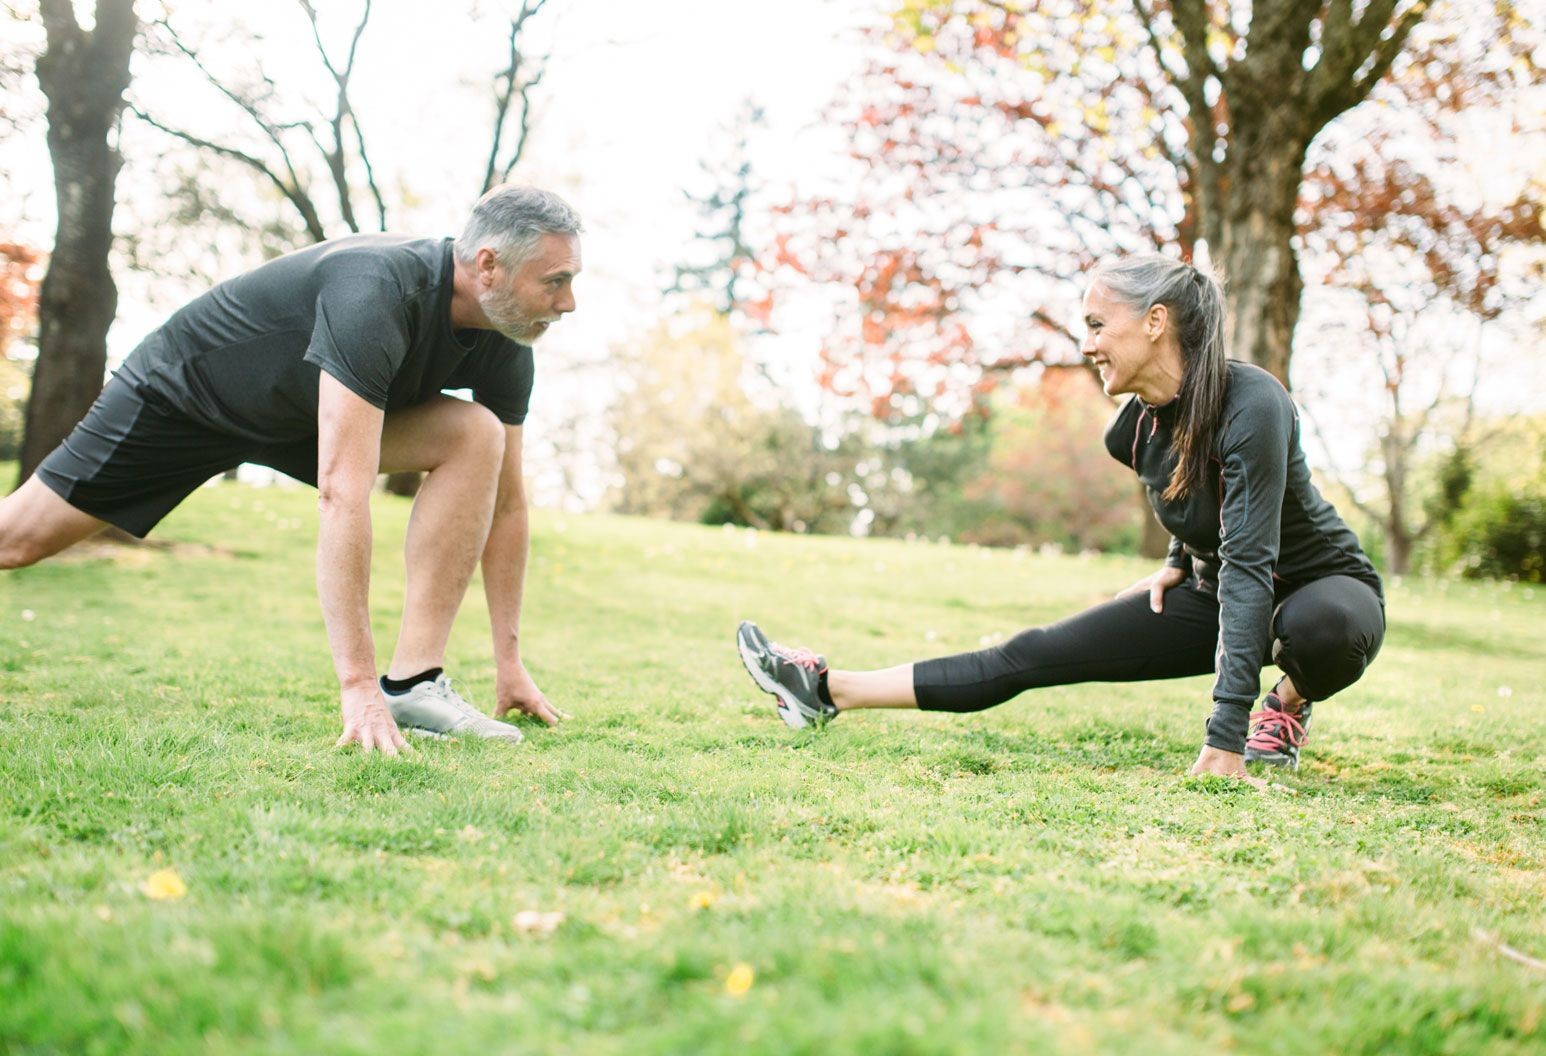 An elderly man and woman stretch outside on the grass during fall. They are both wearing black and looking at each other.There are trees in the background.